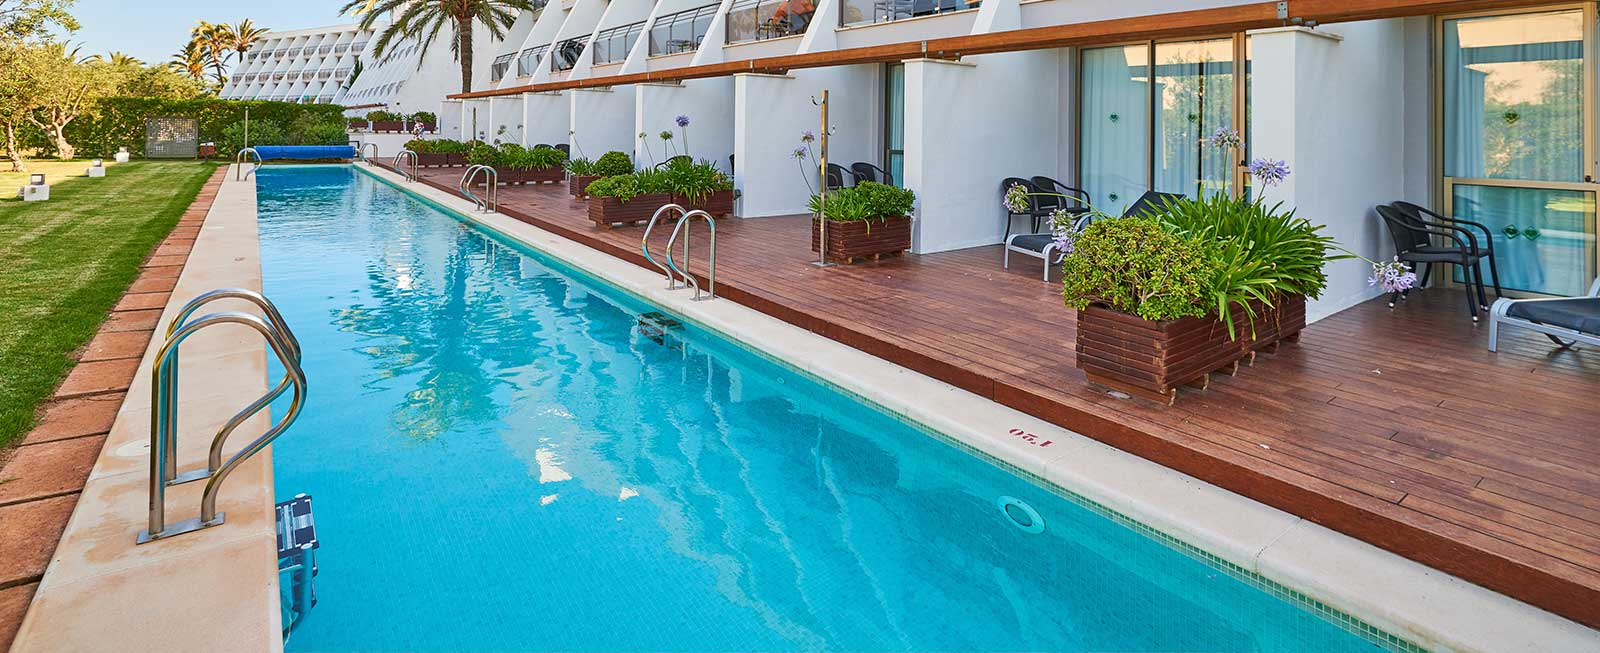 Swim-up Protur Sa Coma Playa Hotel